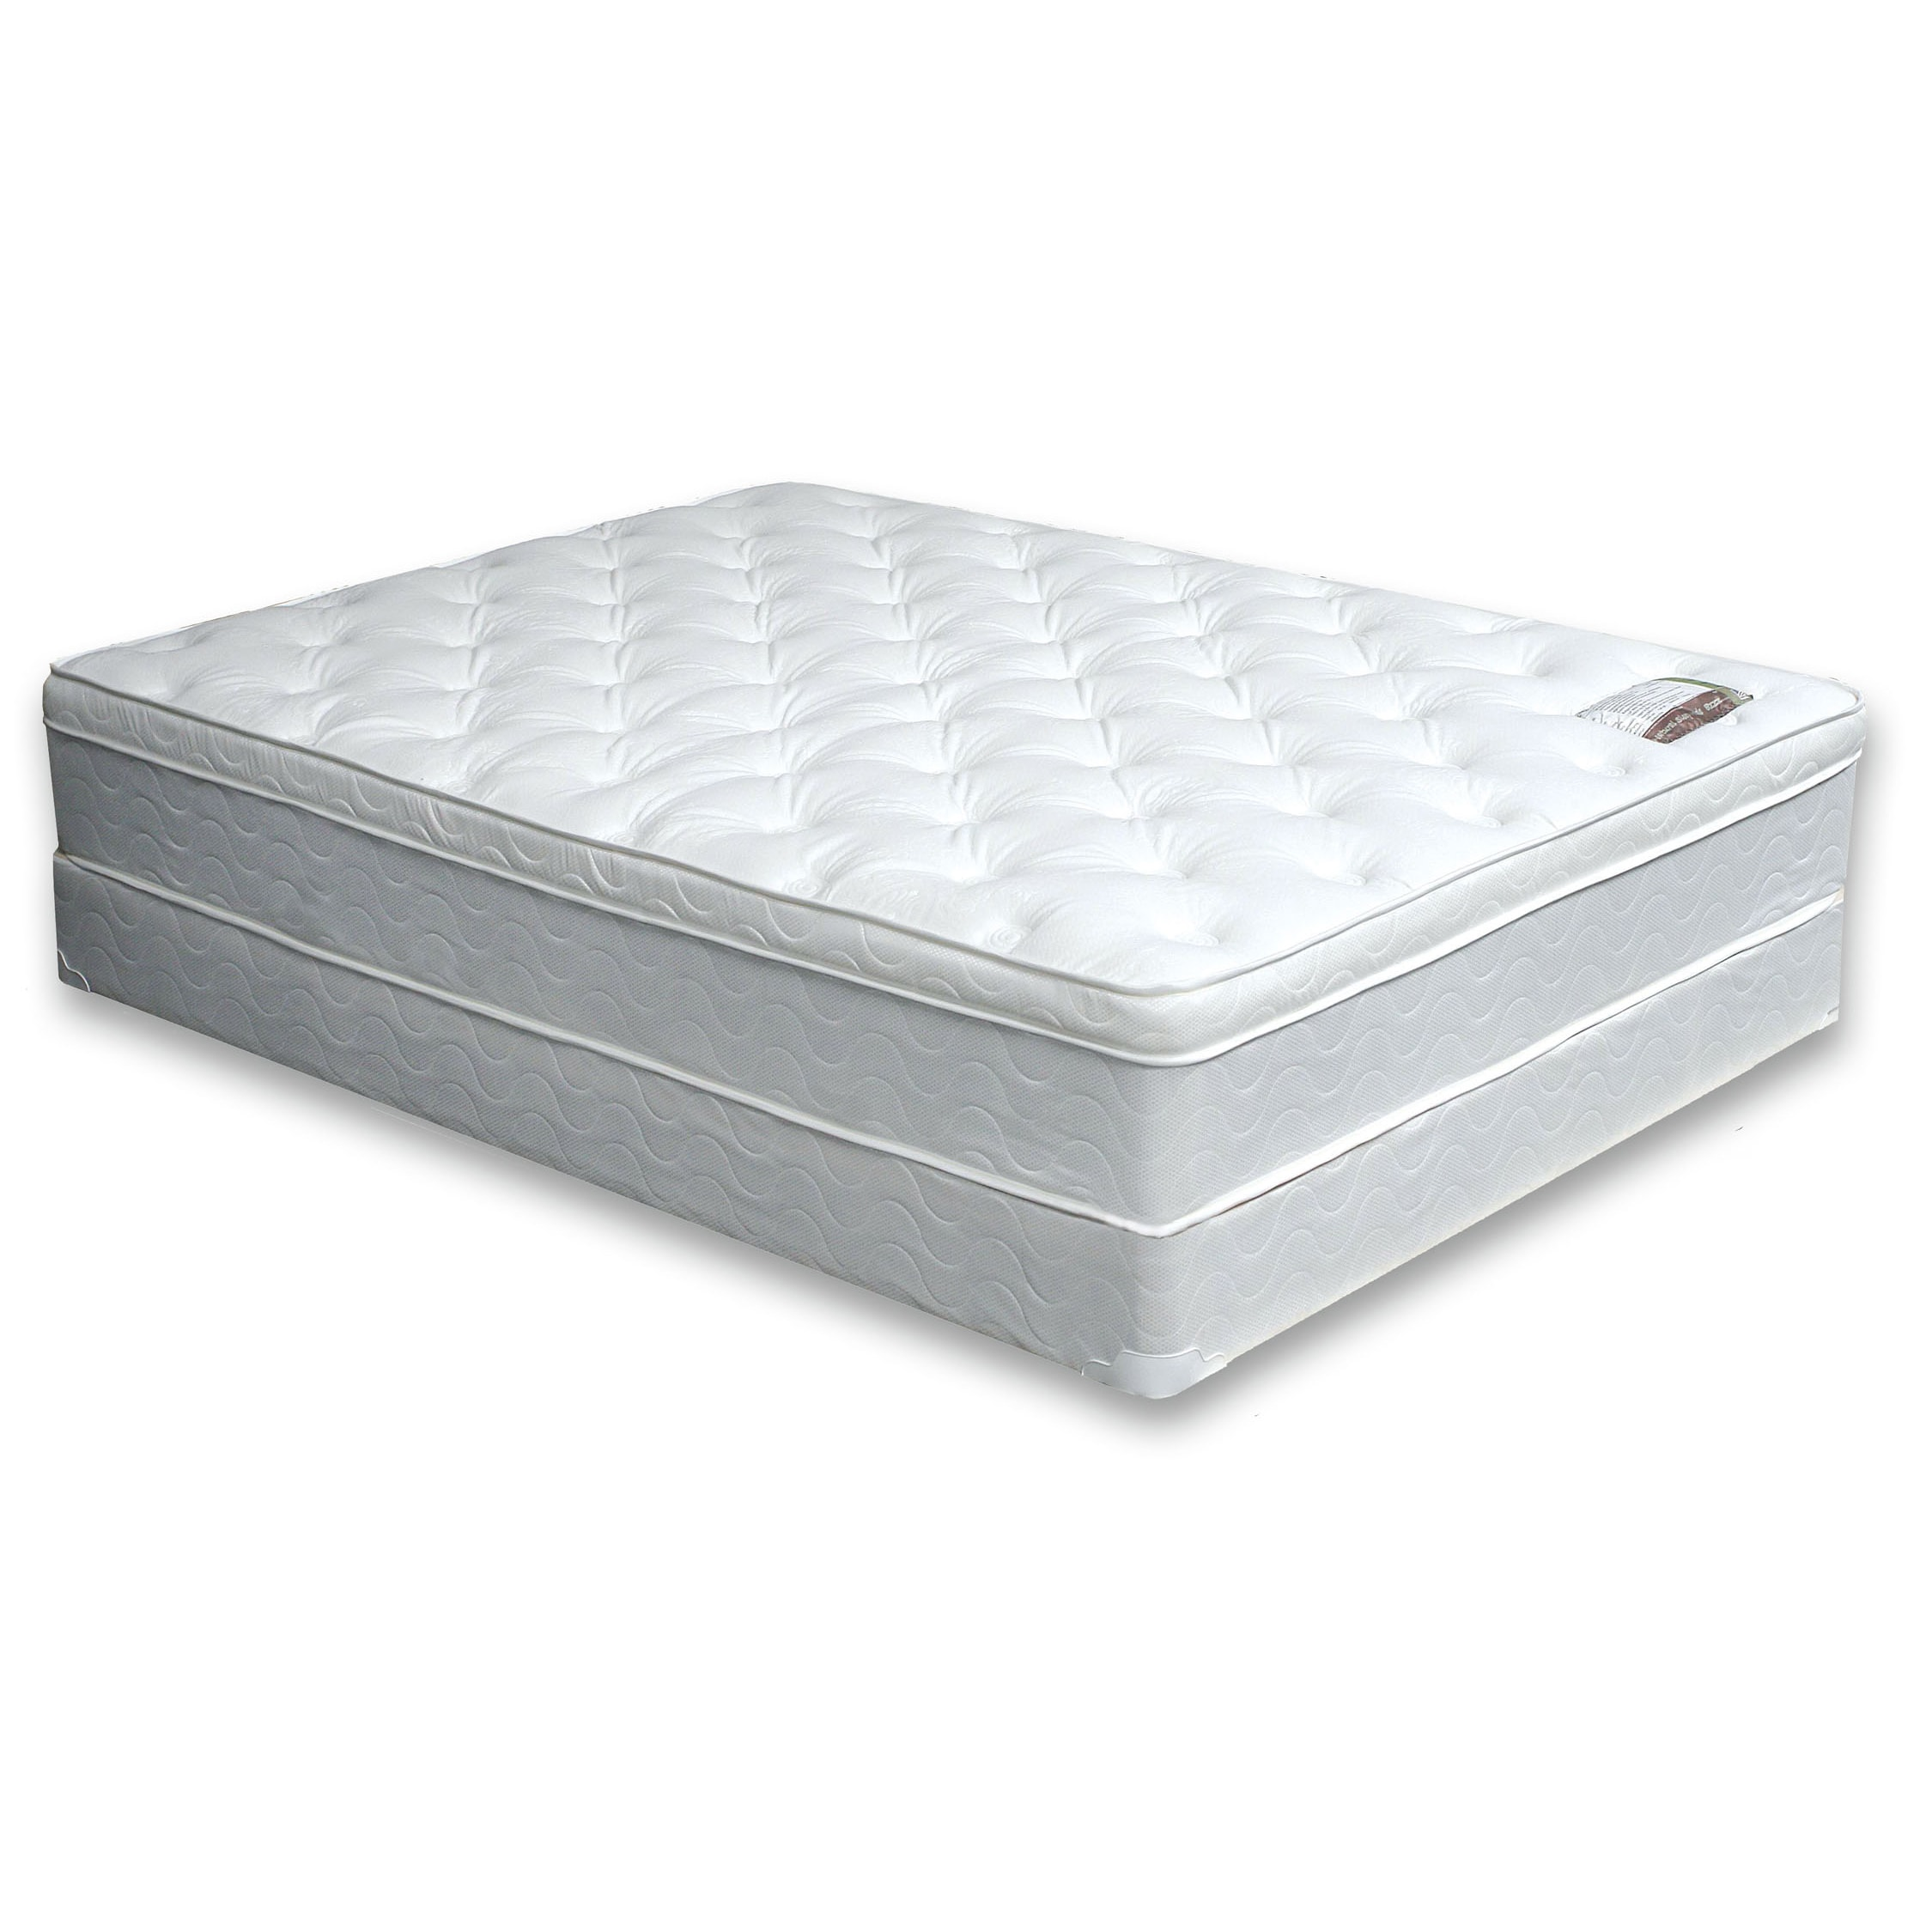 Furniture of America Dreamax 11-inch King-size Euro Top M...